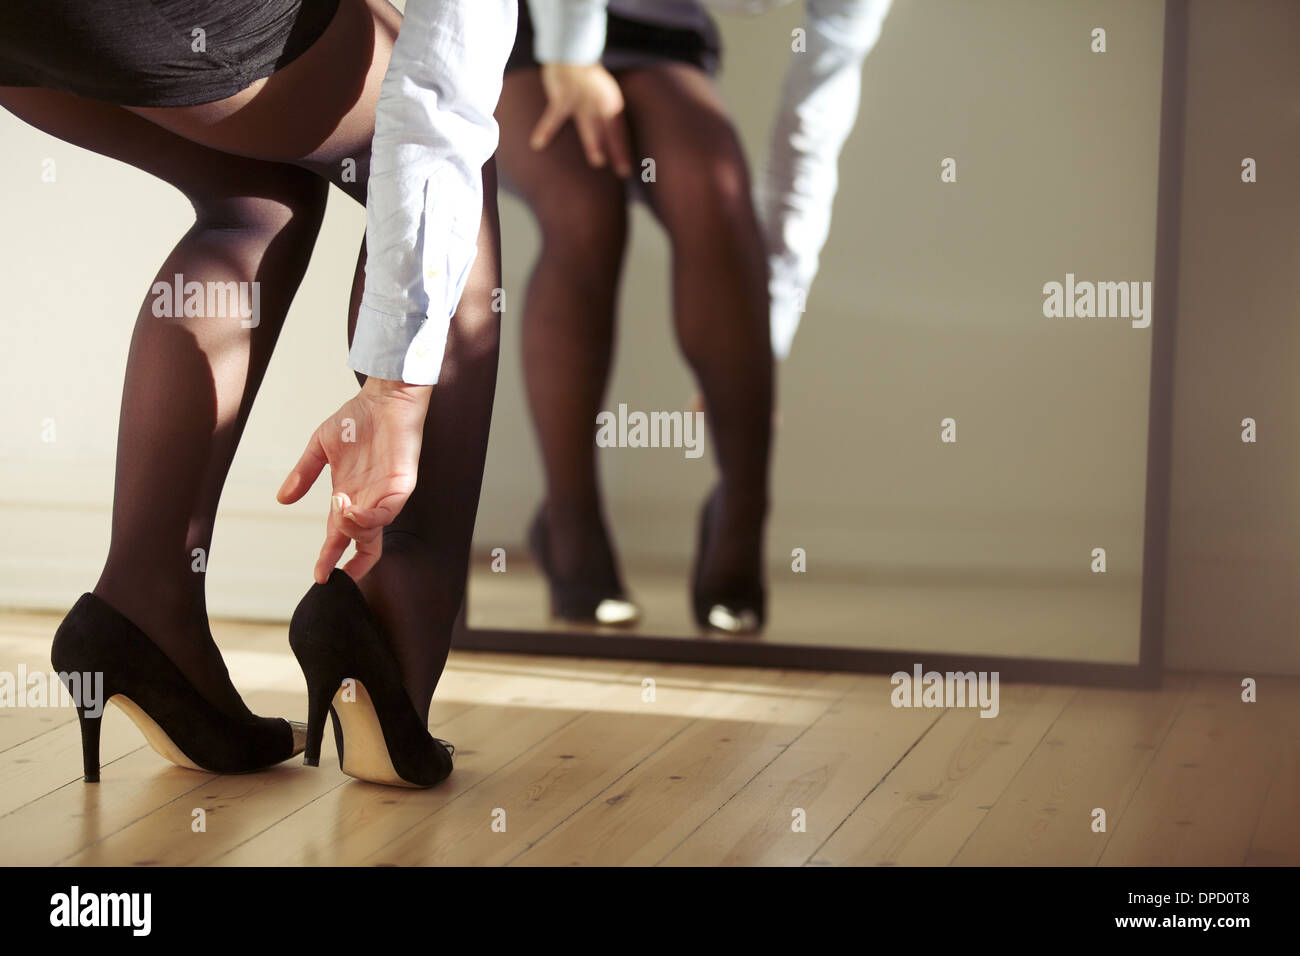 Closeup of female legs wearing high heels shoes. Woman adjusting high heels in front of mirror. - Stock Image